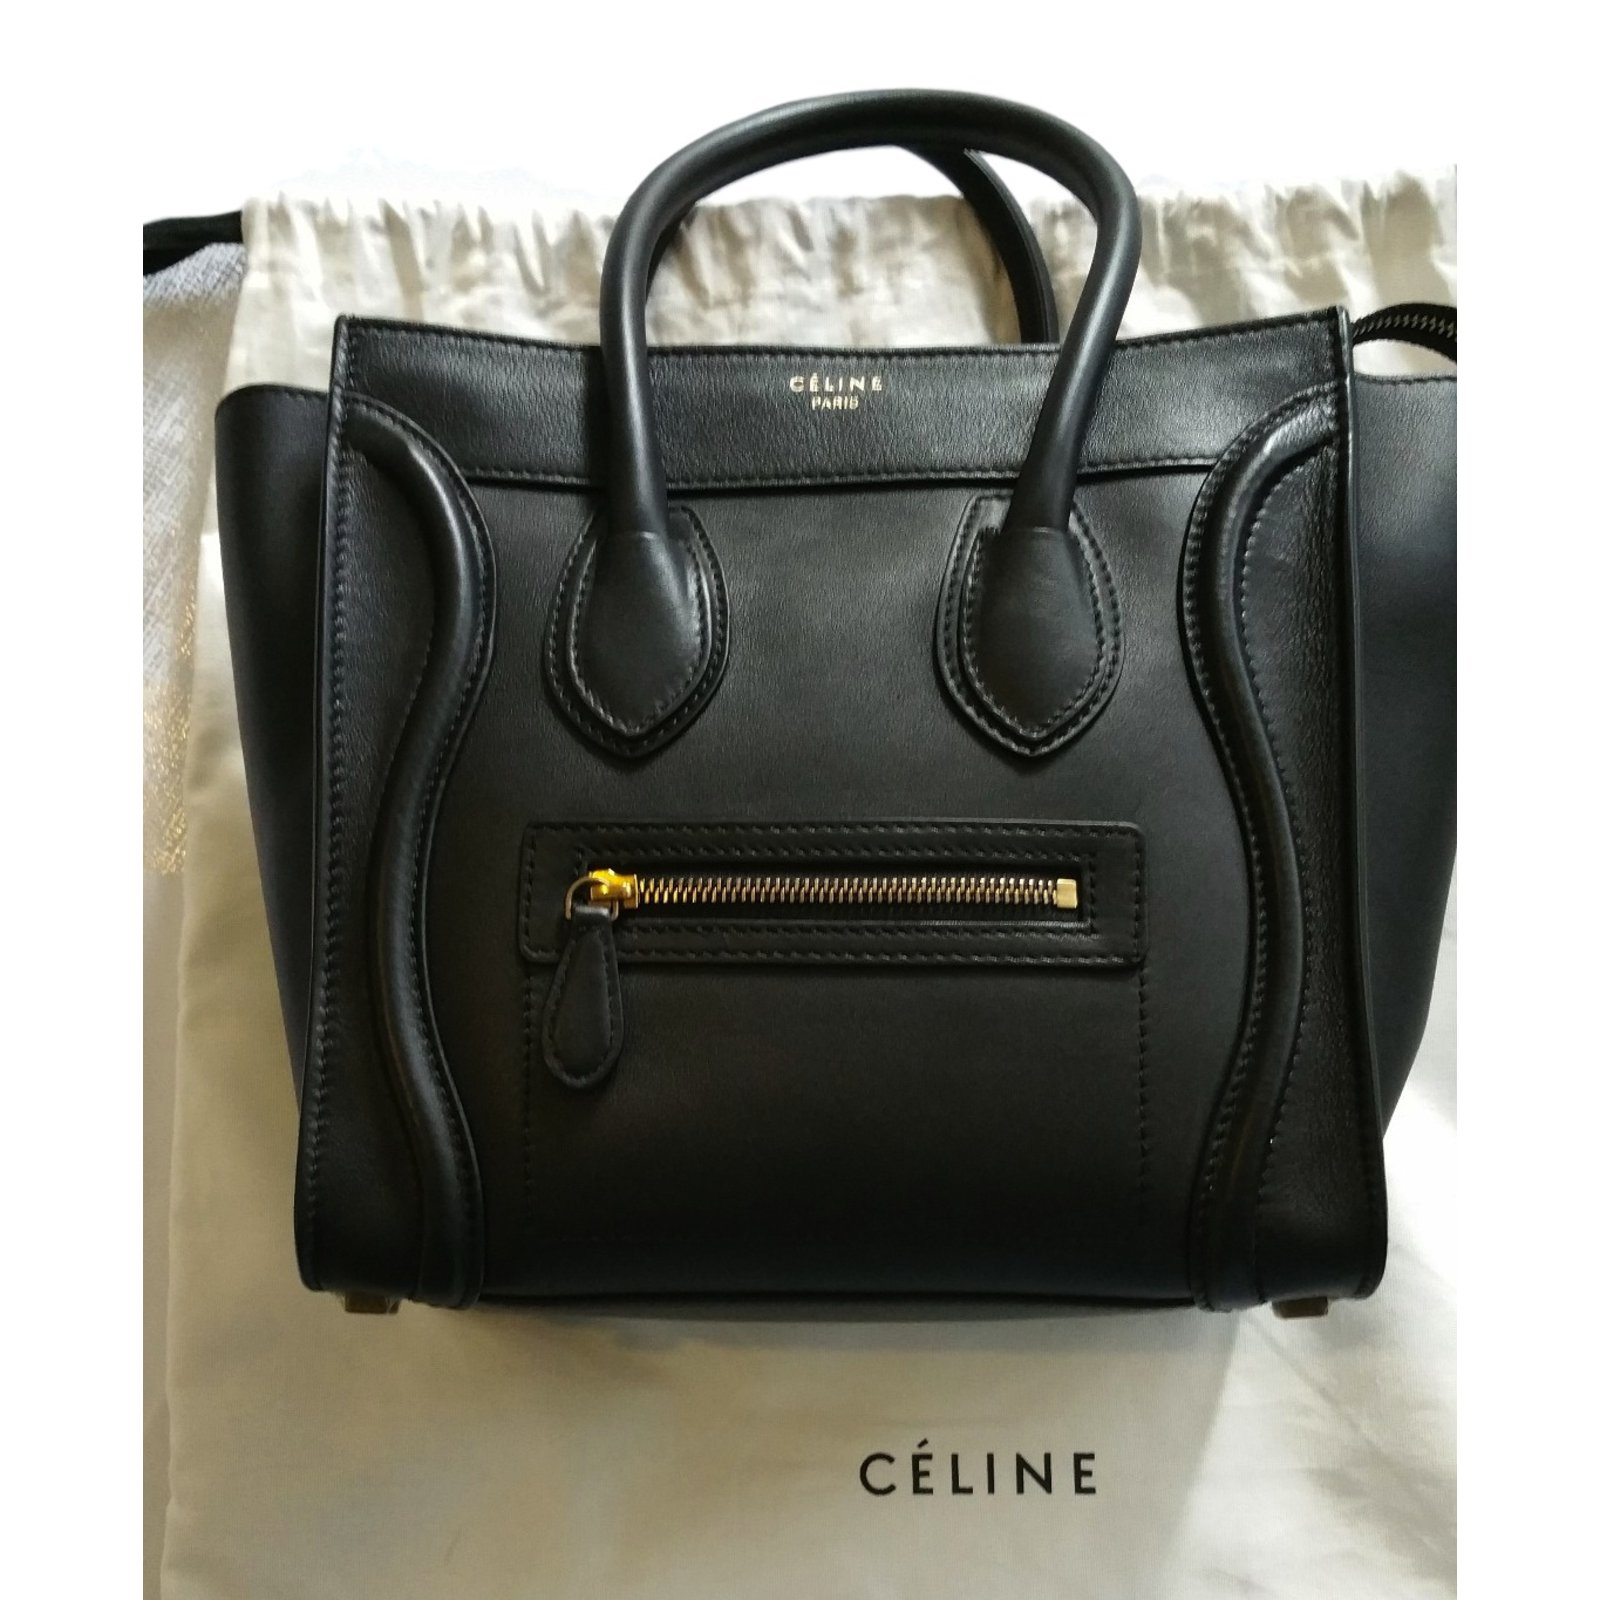 celine sac a main noir celine nano luggage tote. Black Bedroom Furniture Sets. Home Design Ideas